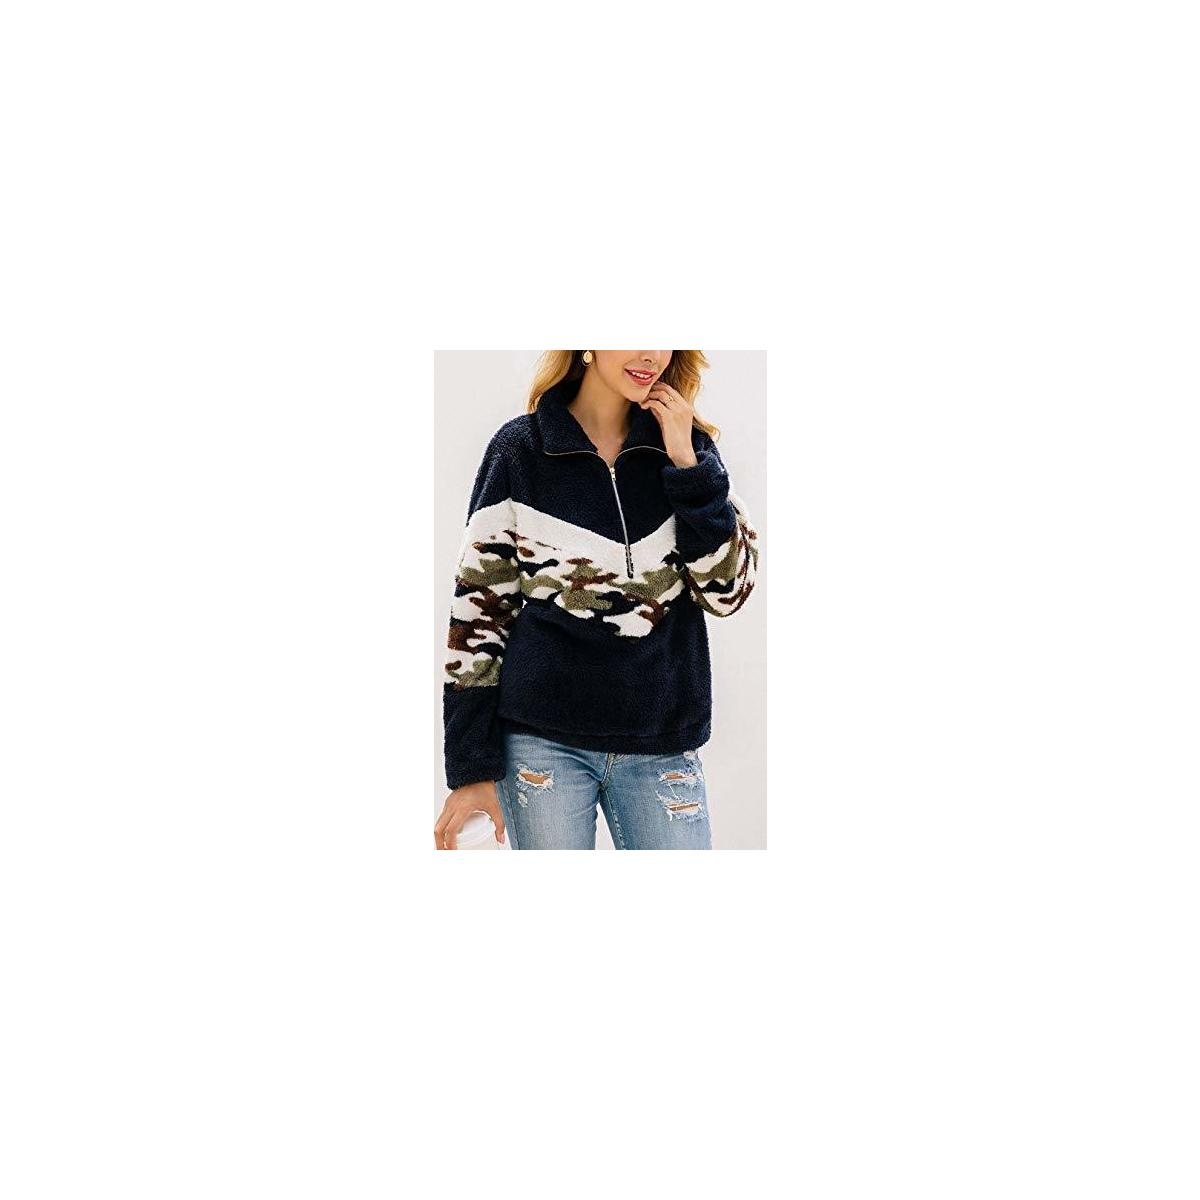 Women's Long Sleeve Camo Print Patchwork Fleece Pullover Tops Fluffy Jacket with Pocket Navy Large